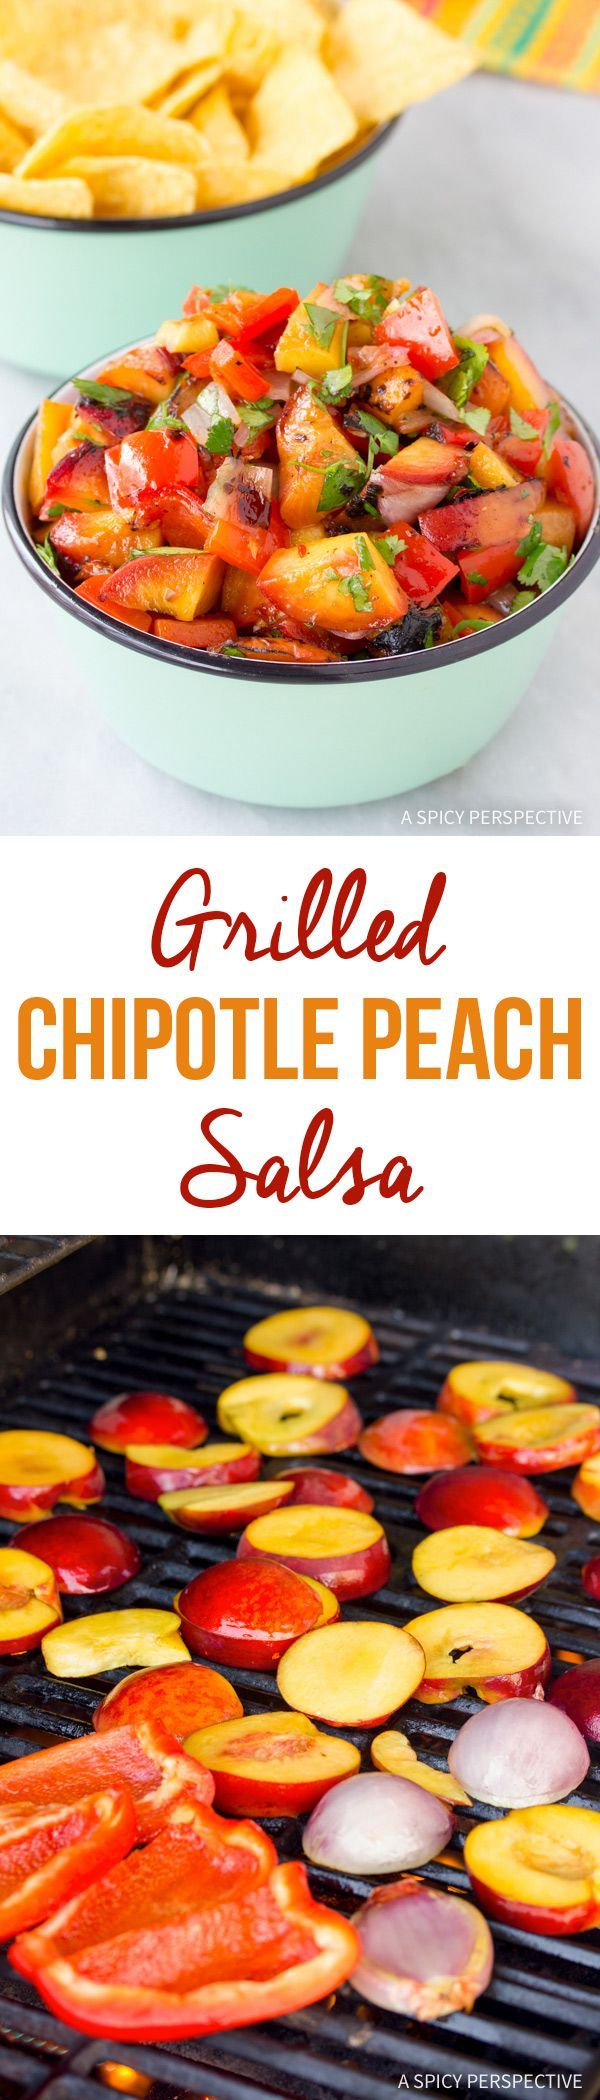 Tangy Grilled Chipotle Peach Salsa Recipe